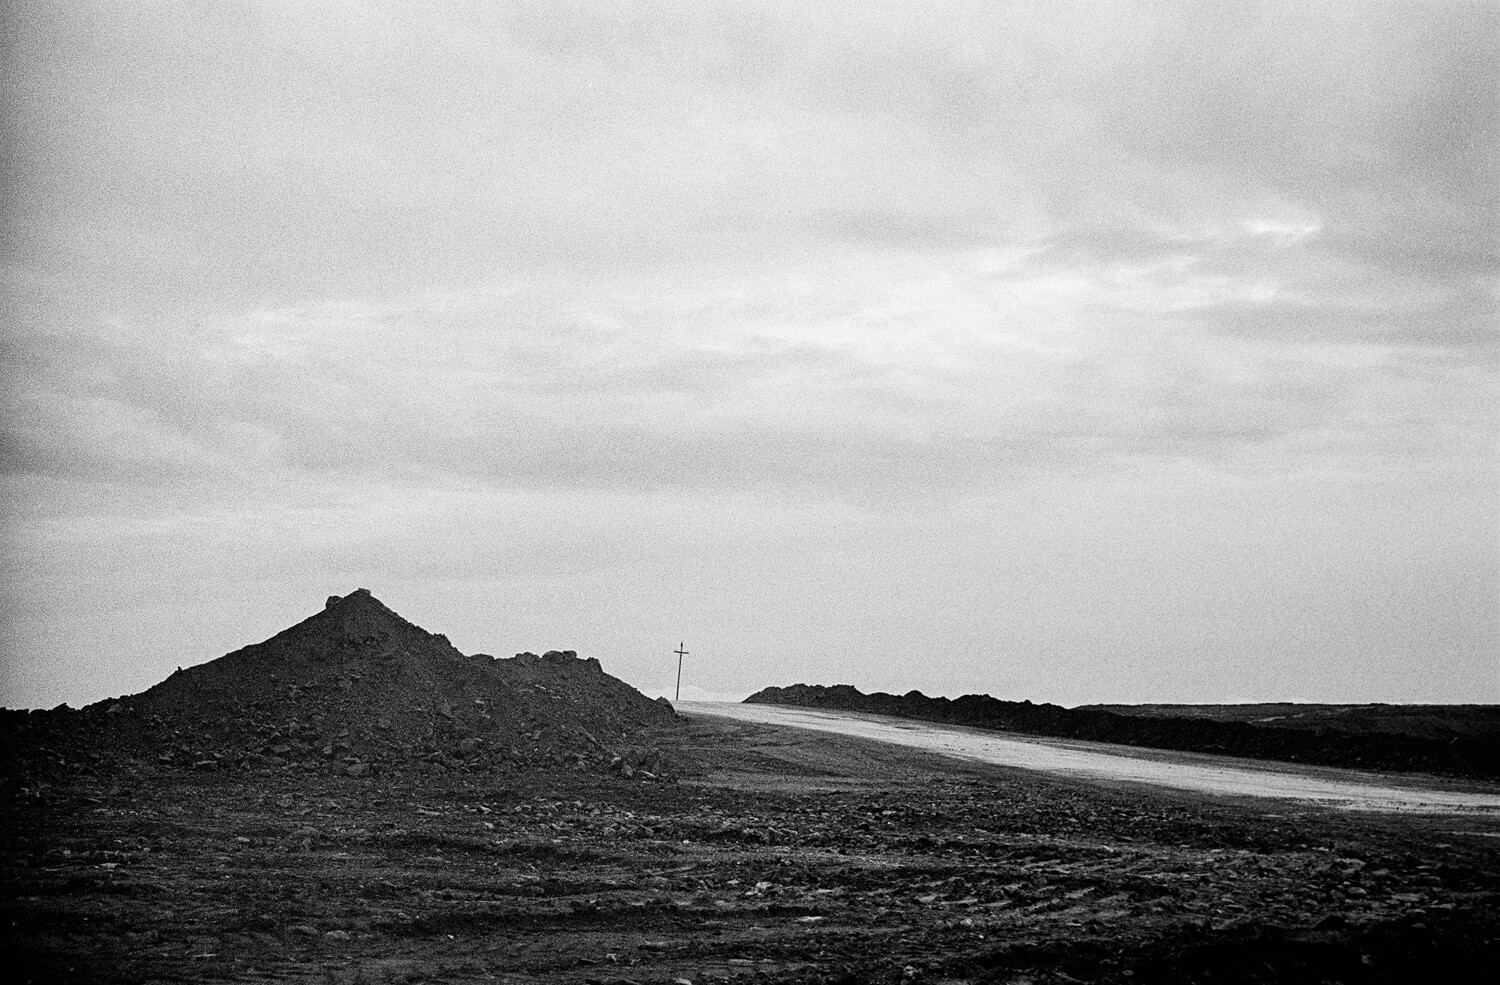 5 Frames... Of alien landscapes in Murmanskaya state on a Leica M7 and Voigtlander Ultron 21mm f/1.8 (EI 400 / 35mm format / ILFORD HP5 PLUS) - by Alex Kulikov